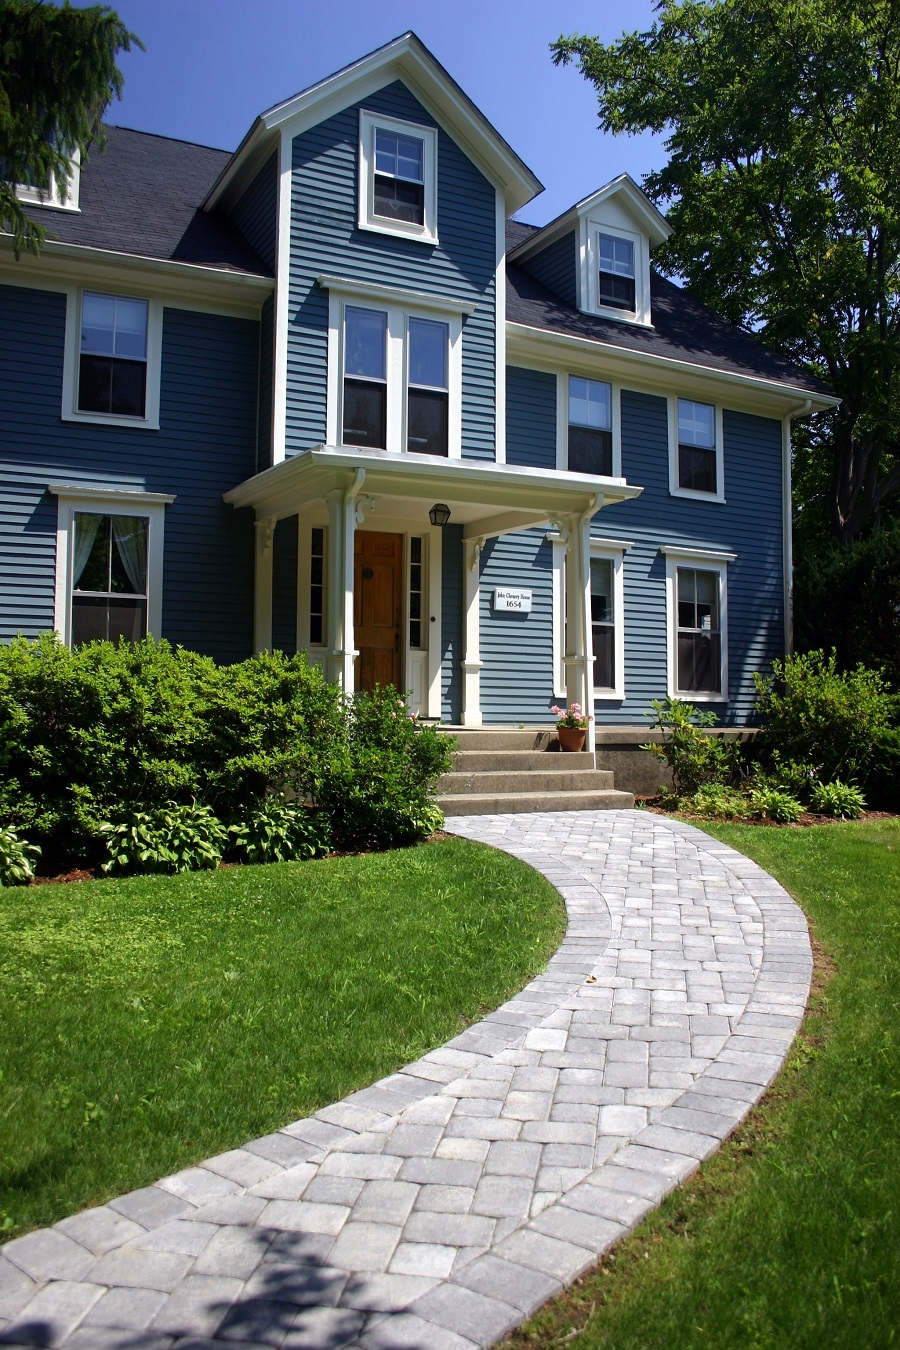 Walkway pavers in Lexington, MA by Unilock Authorized Contractor